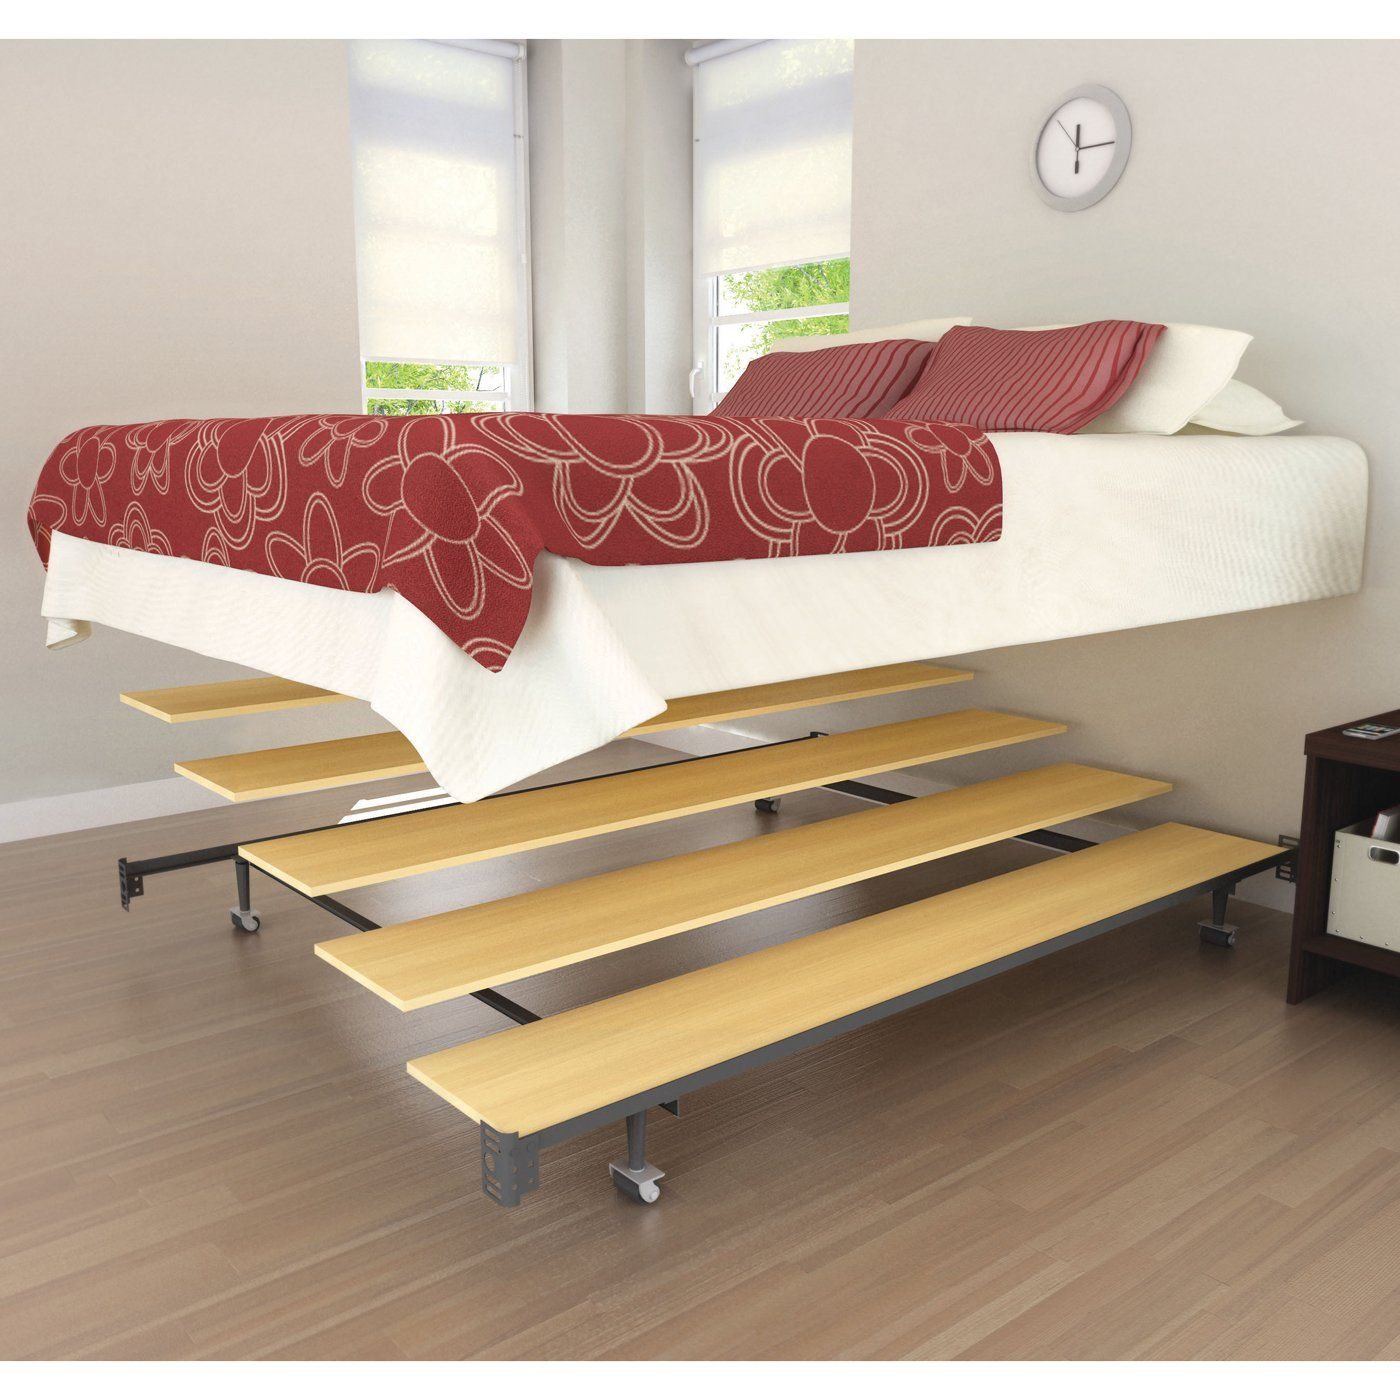 cool Amazing Queen Bed And Mattress Set 54 In Small Home Decor Inspiration  with Queen Bed